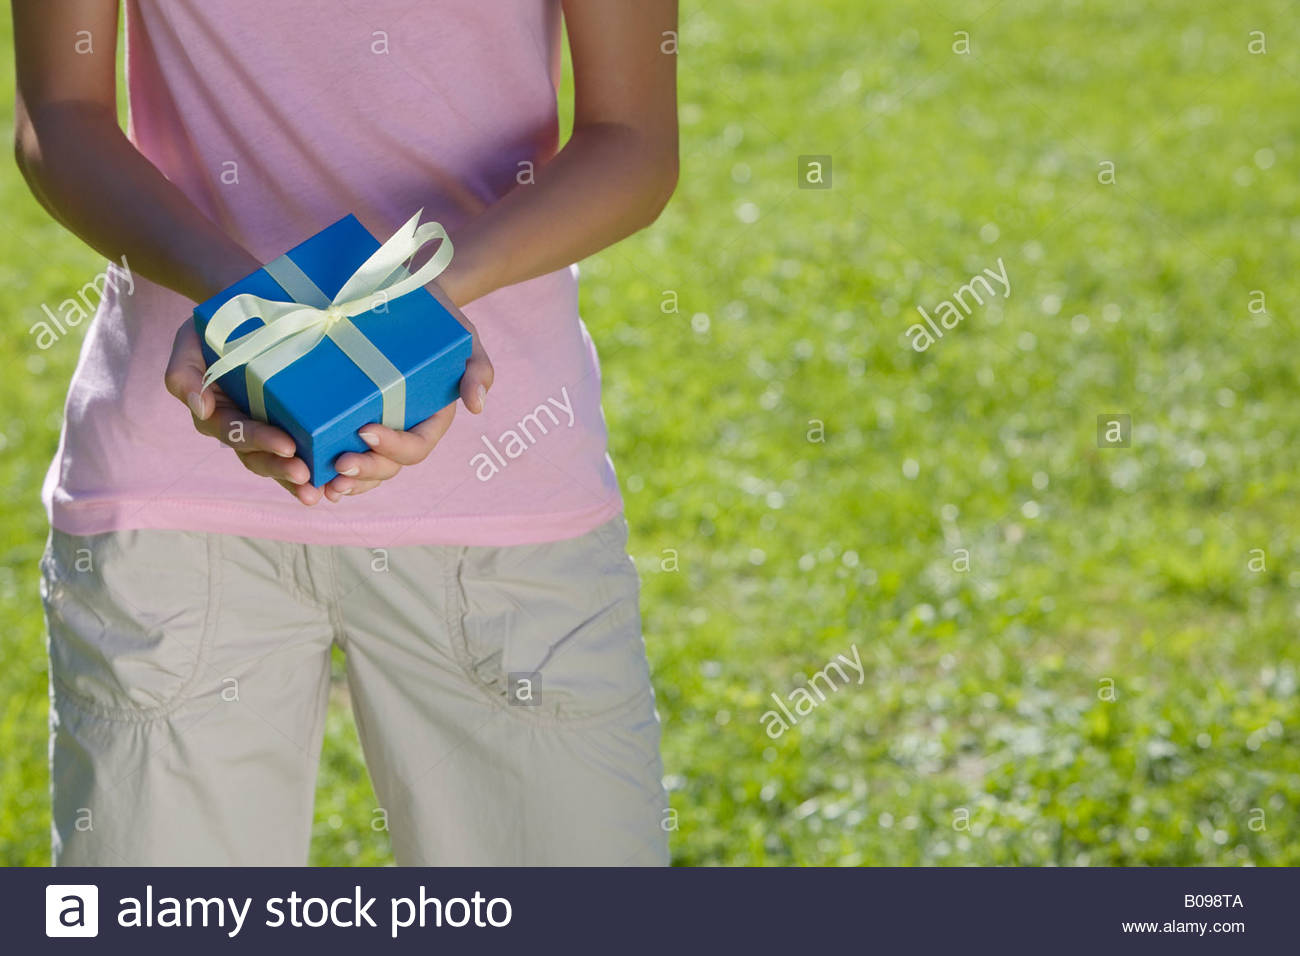 Young woman holding blue present with yellow ribbon in her hands - Stock Image